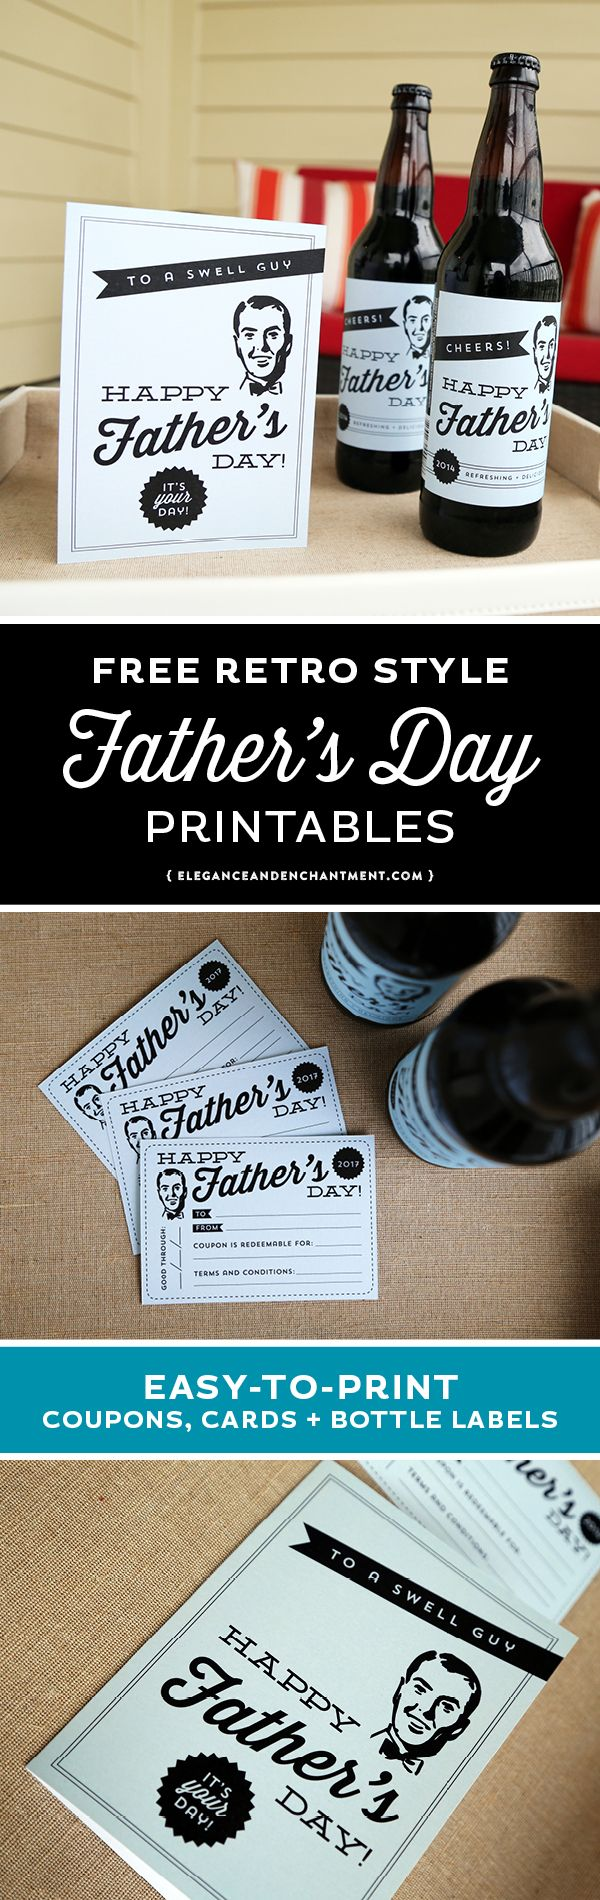 Find a free and easy last-minute Father's Day Gift in these retro styled Father's Day Printables. Your free download includes a Father's Day Card, Coupons and Beer/Wine/Soda Pop Labels. // Designs from Elegance and Enchantment